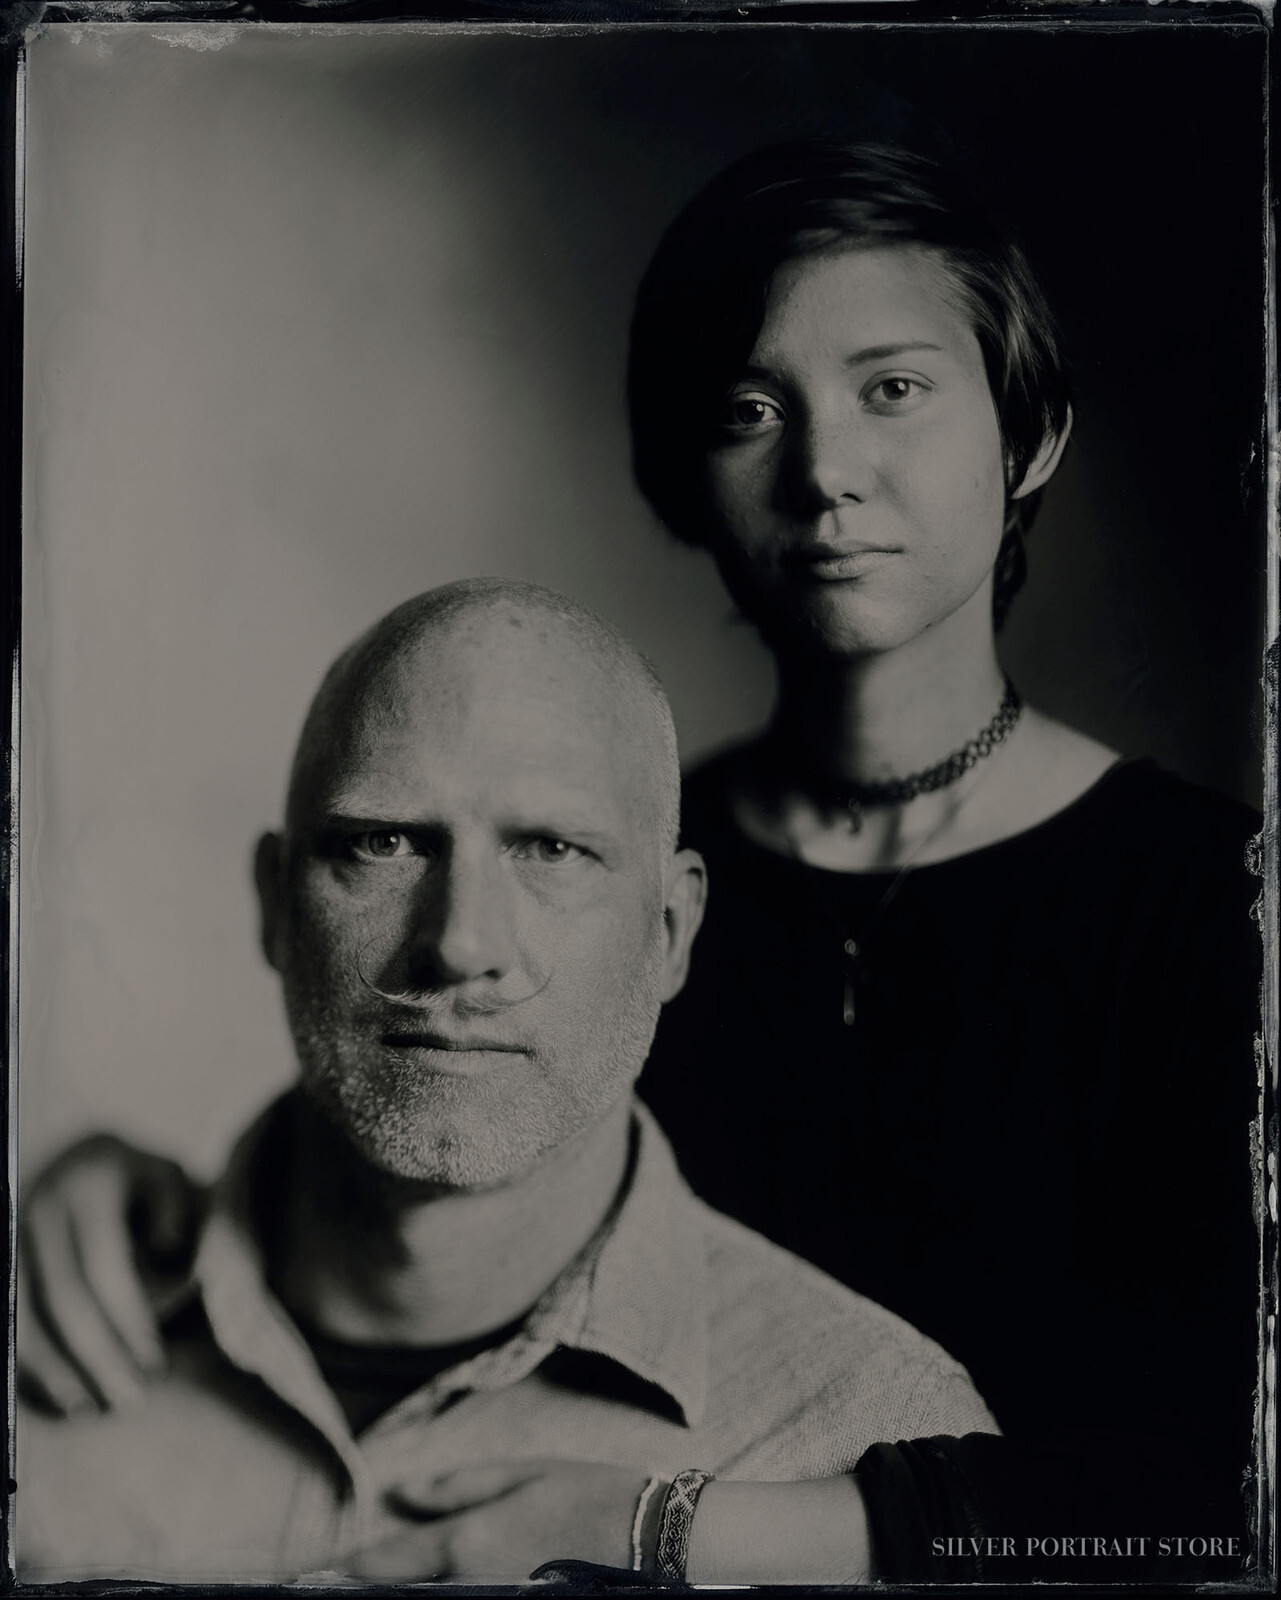 Paul, Ellie & Holly-Silver Portrait Store-Scan from Wet plate collodion-Tintype 20 x 25 cm